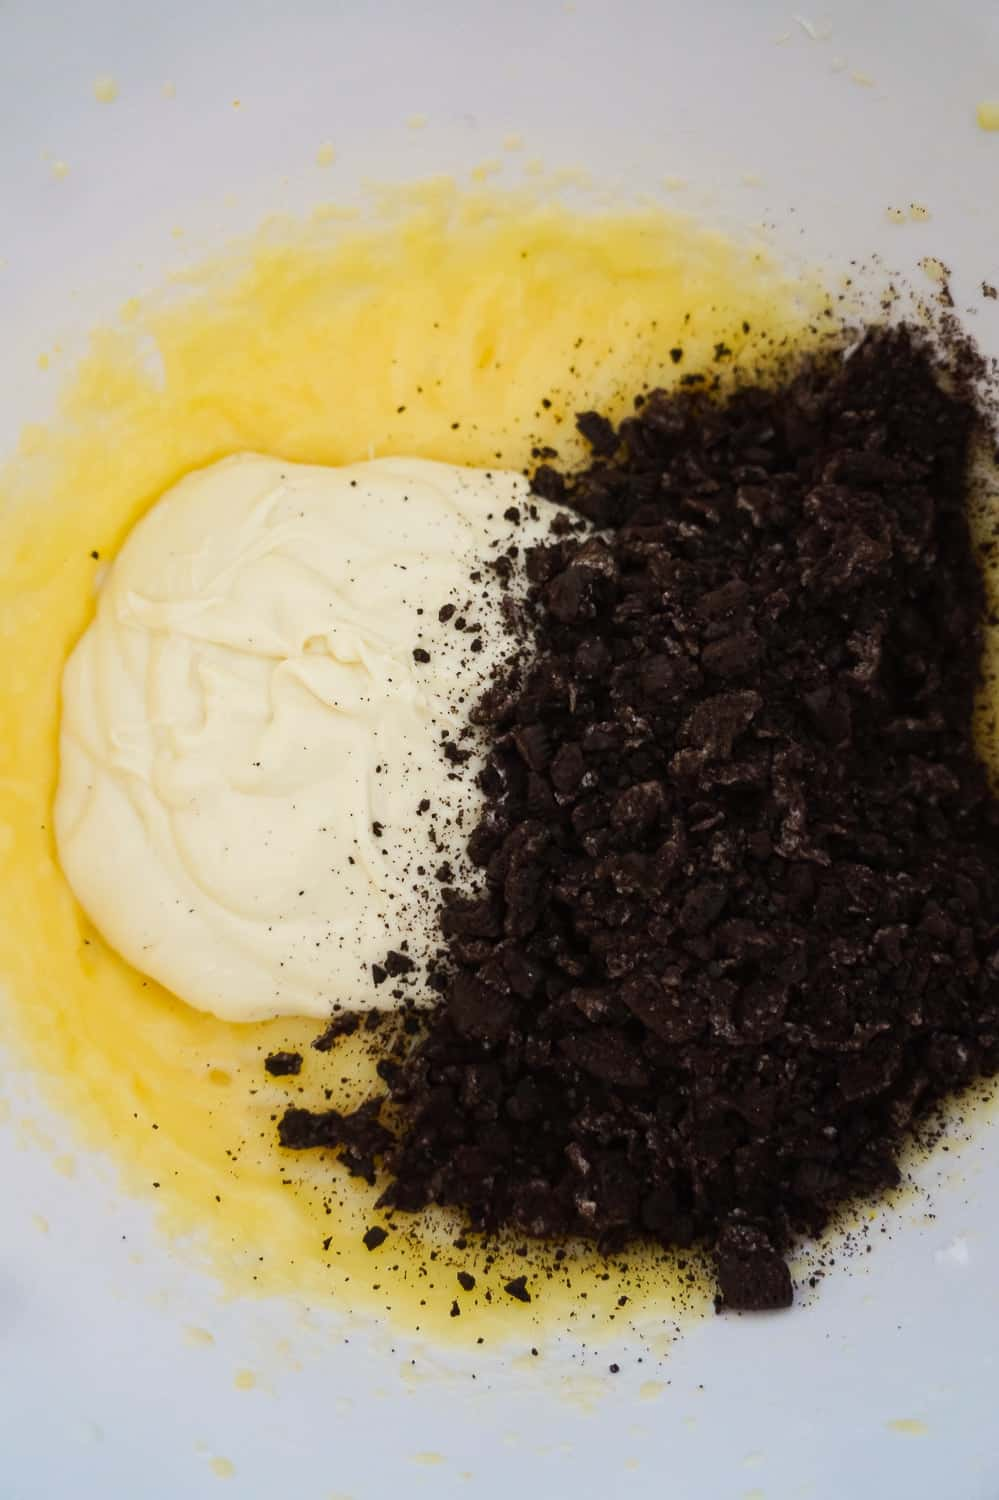 melted white chocolate and crushed Oreo cookies added to vanilla pudding mixture in mixing bowl